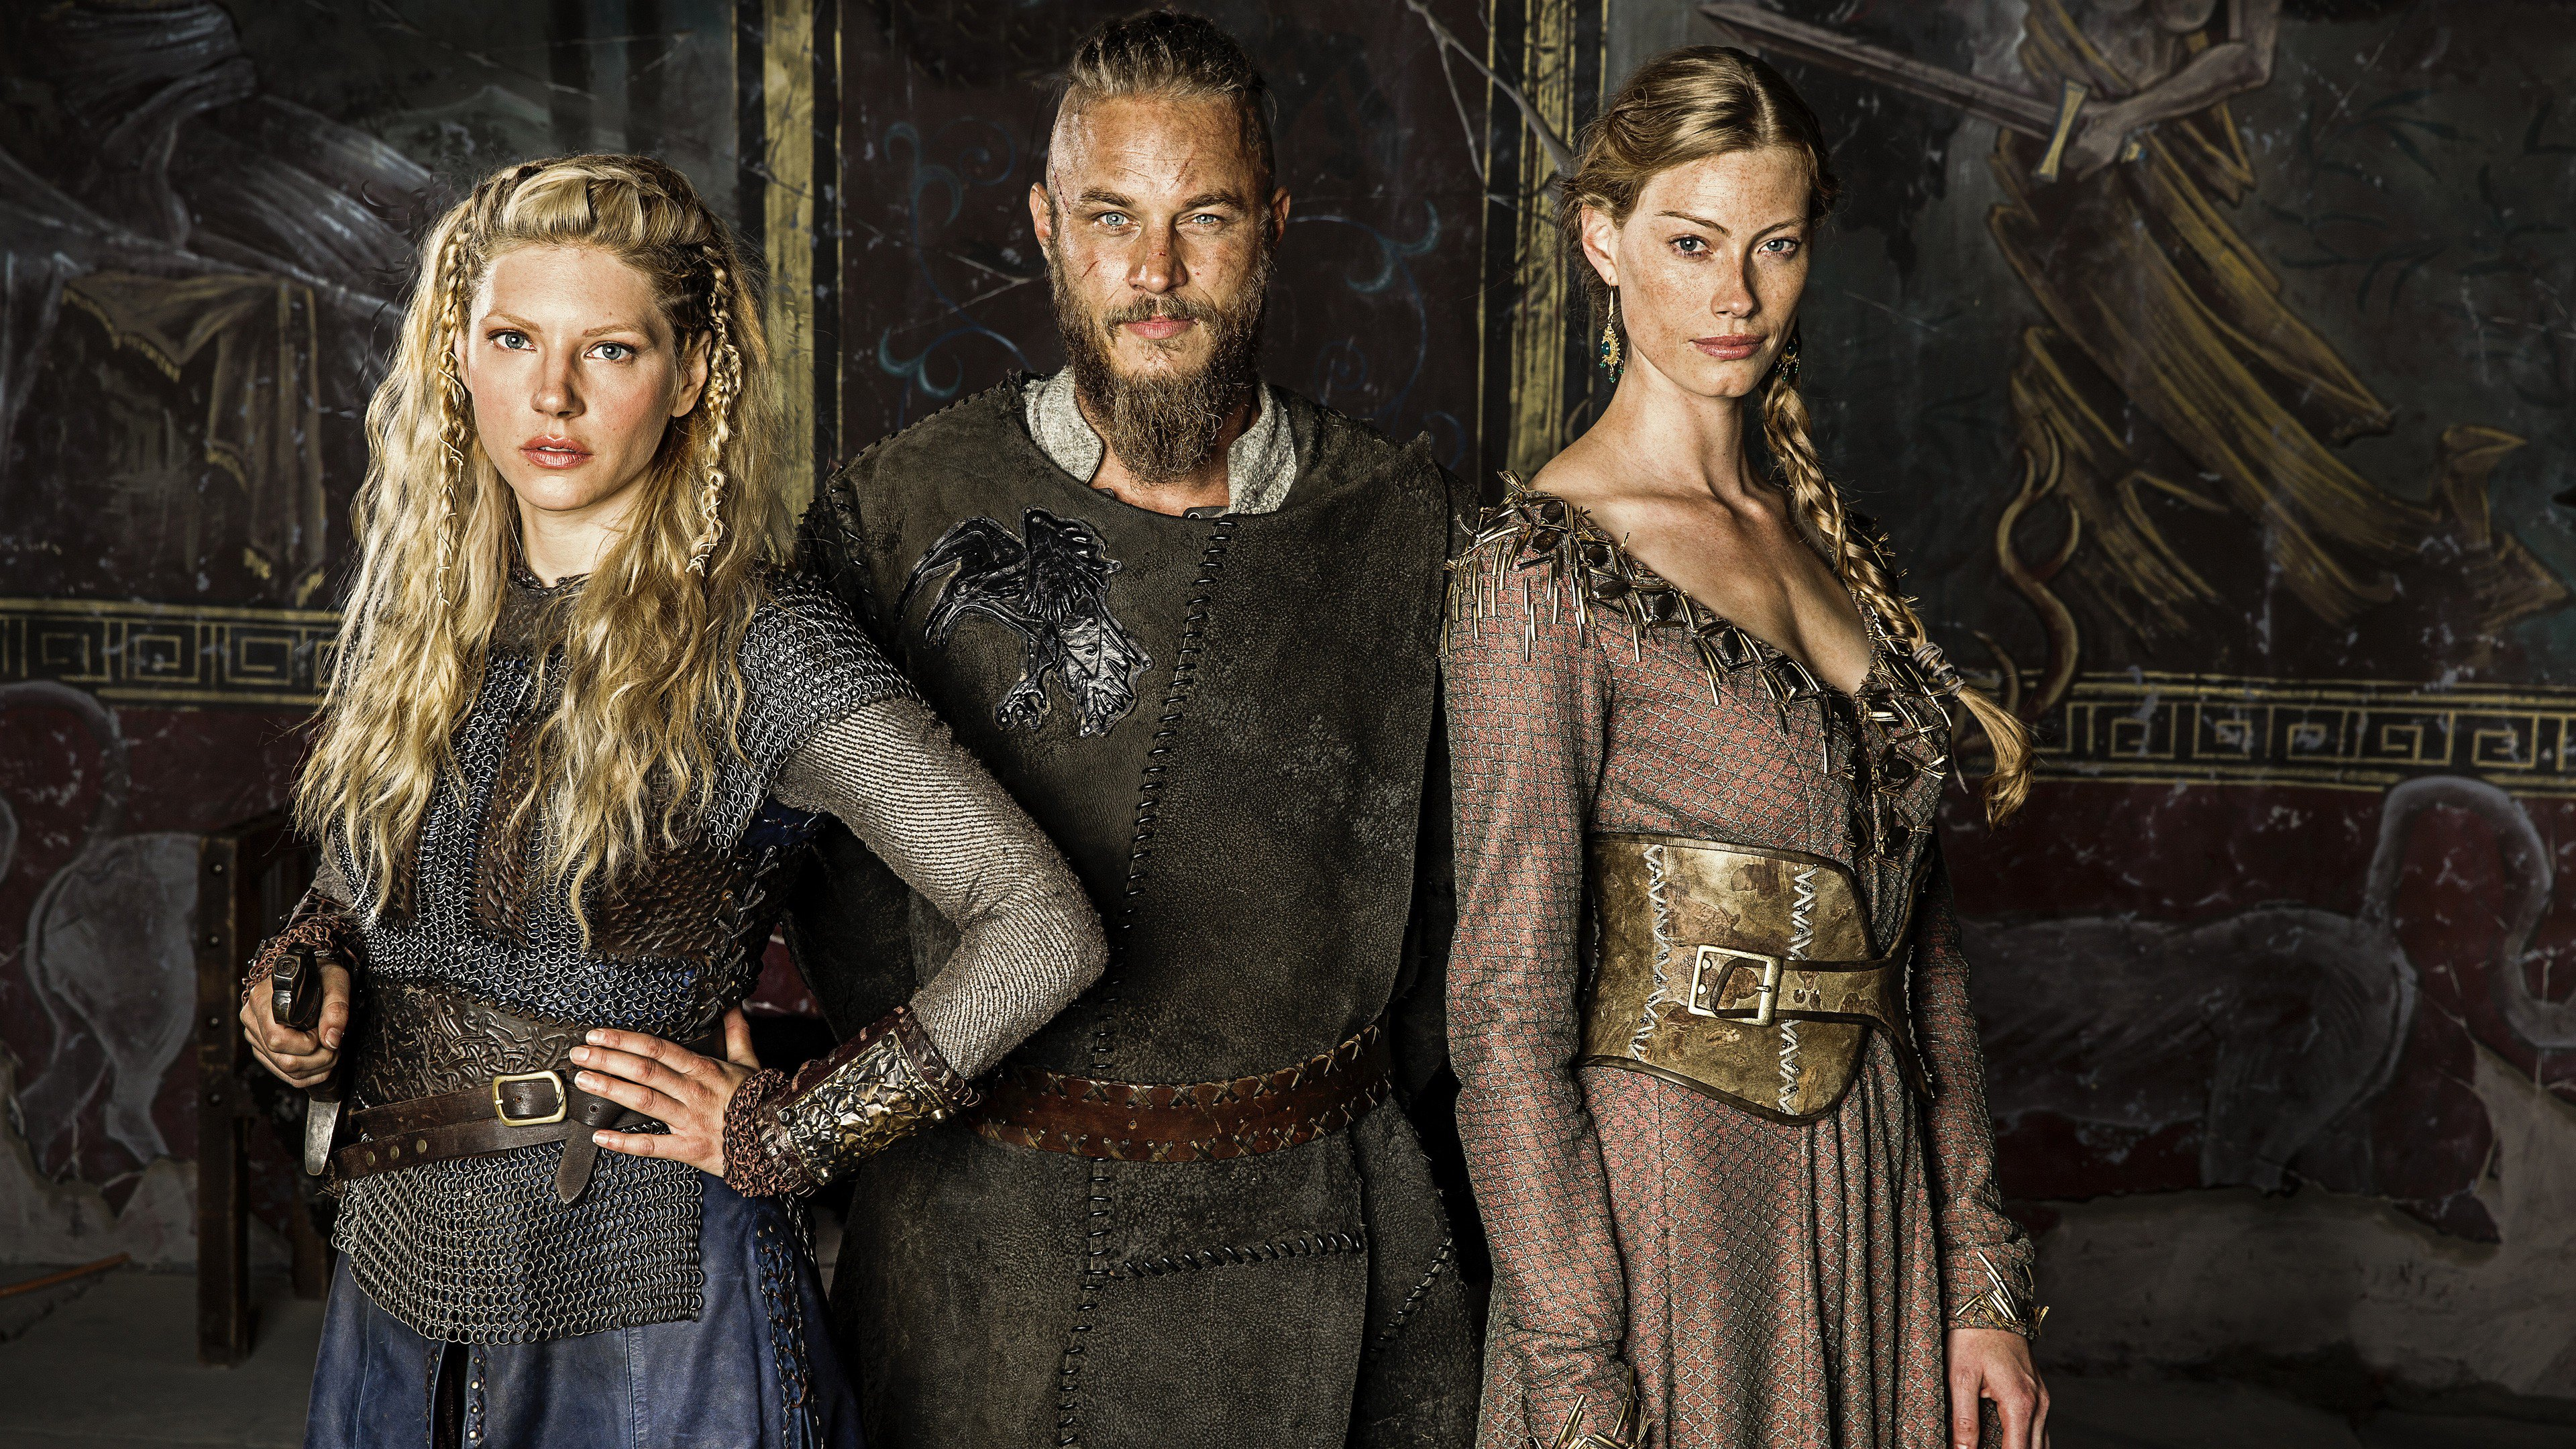 Vikings HD Tv Shows 4k Wallpapers Images Backgrounds Photos